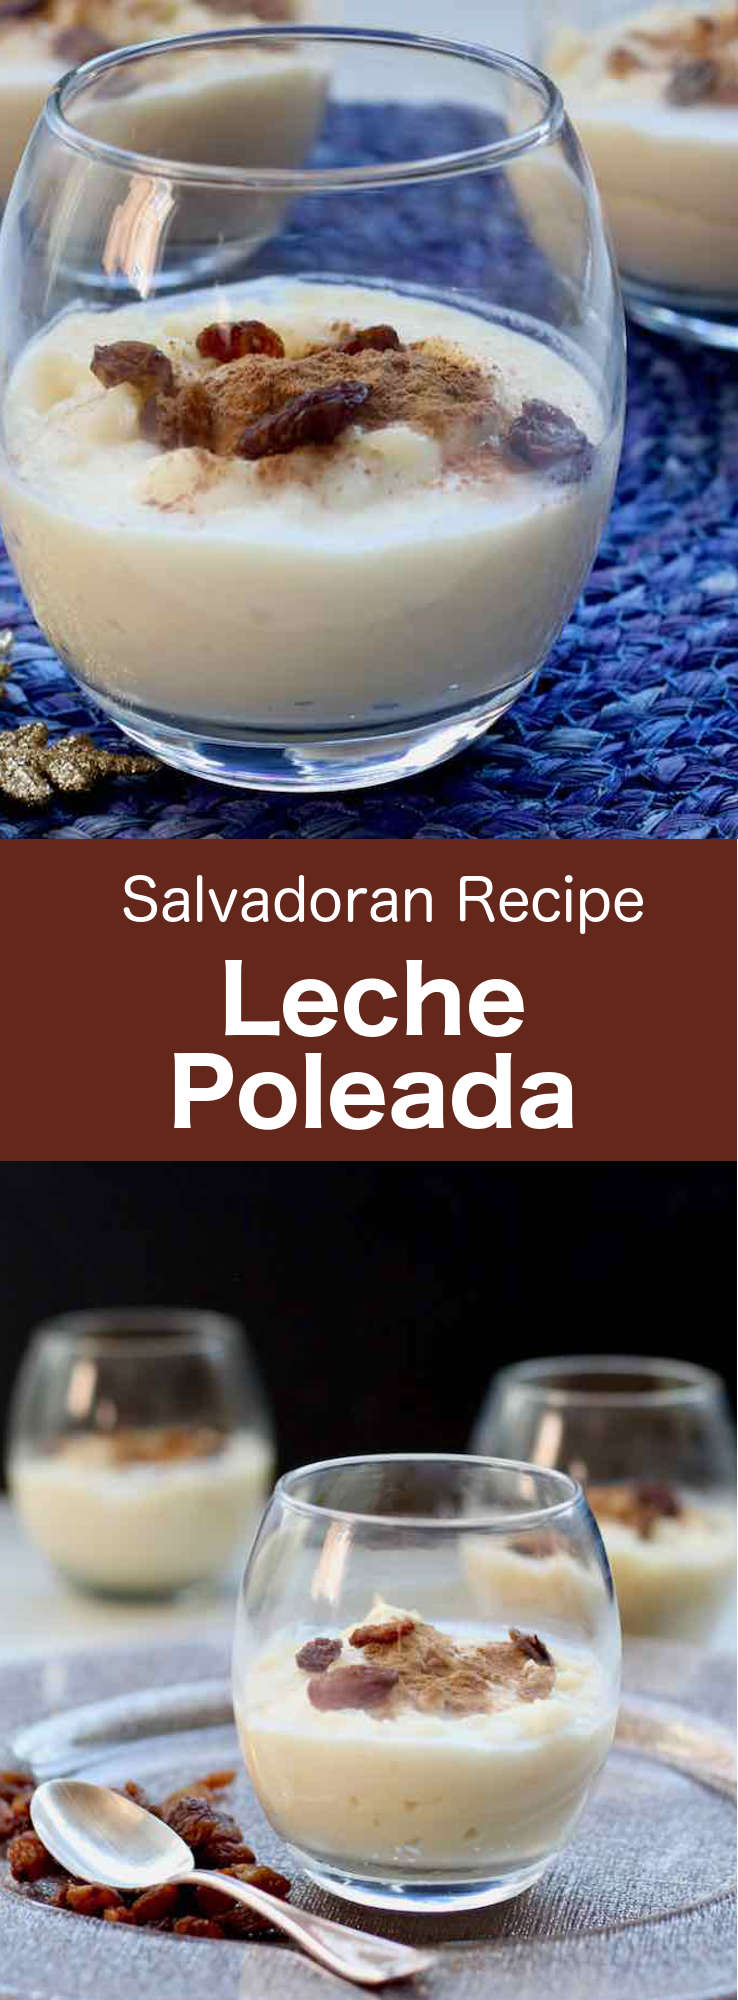 Leche poleada is a traditional dairy dessert from El Salvador flavored with cinnamon and vanilla that can also serve as a base for other recipes. #CentralAmericanCuisine #CentralAmericanRecipe #SalvadoranCuisine #SalvadoranRecipe #WorldCuisine #196flavors